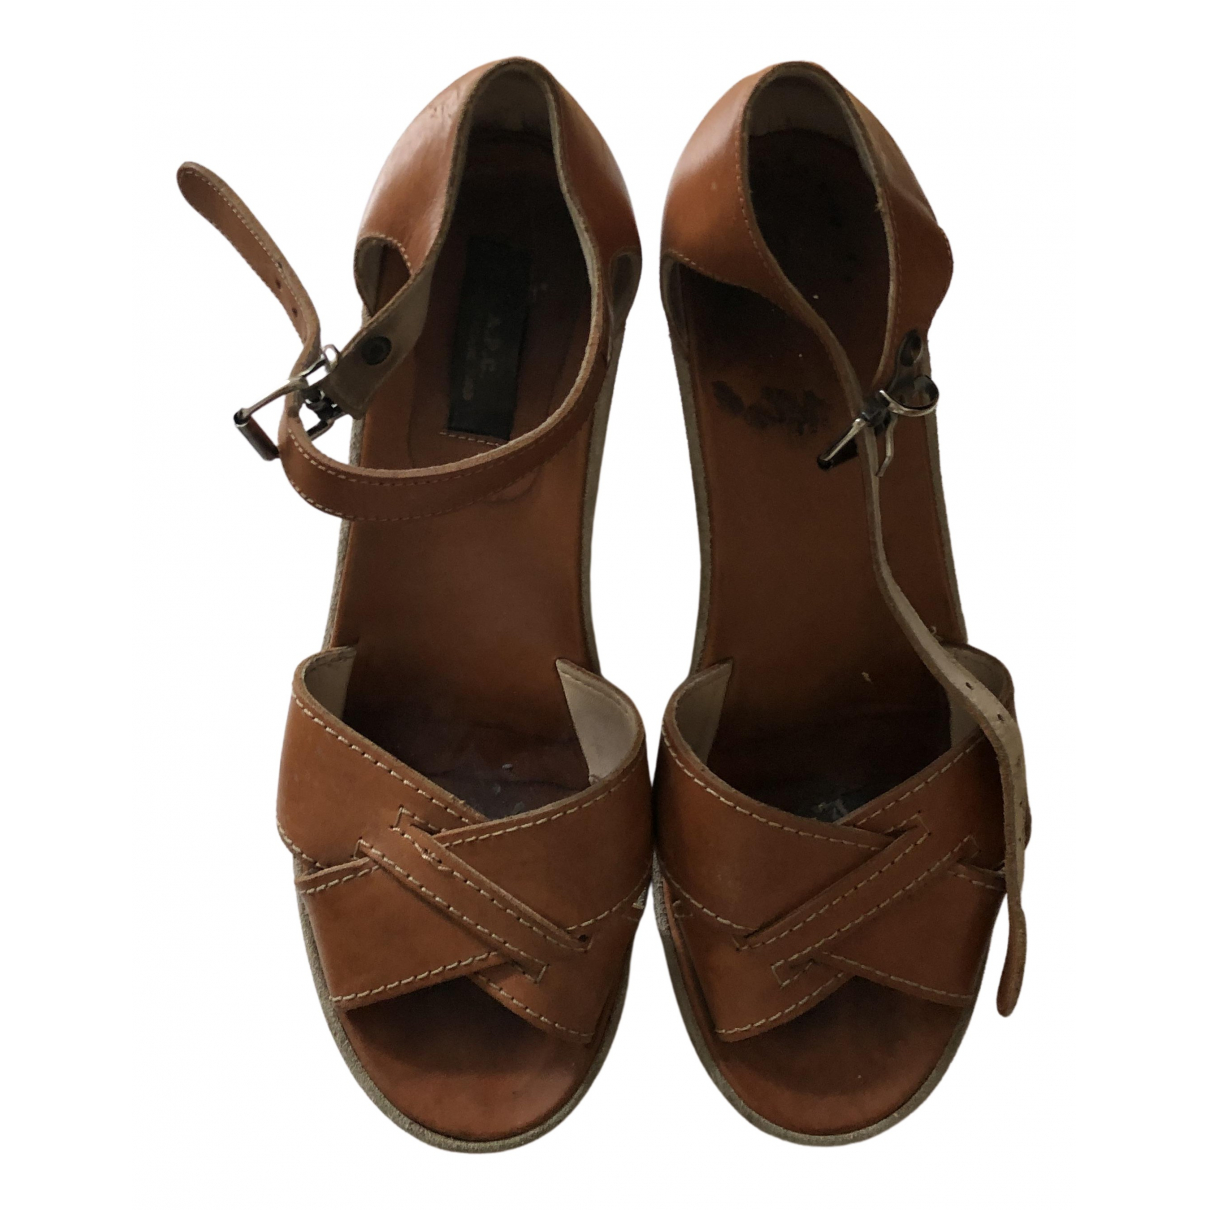 Apc N Brown Leather Sandals for Women 39 EU